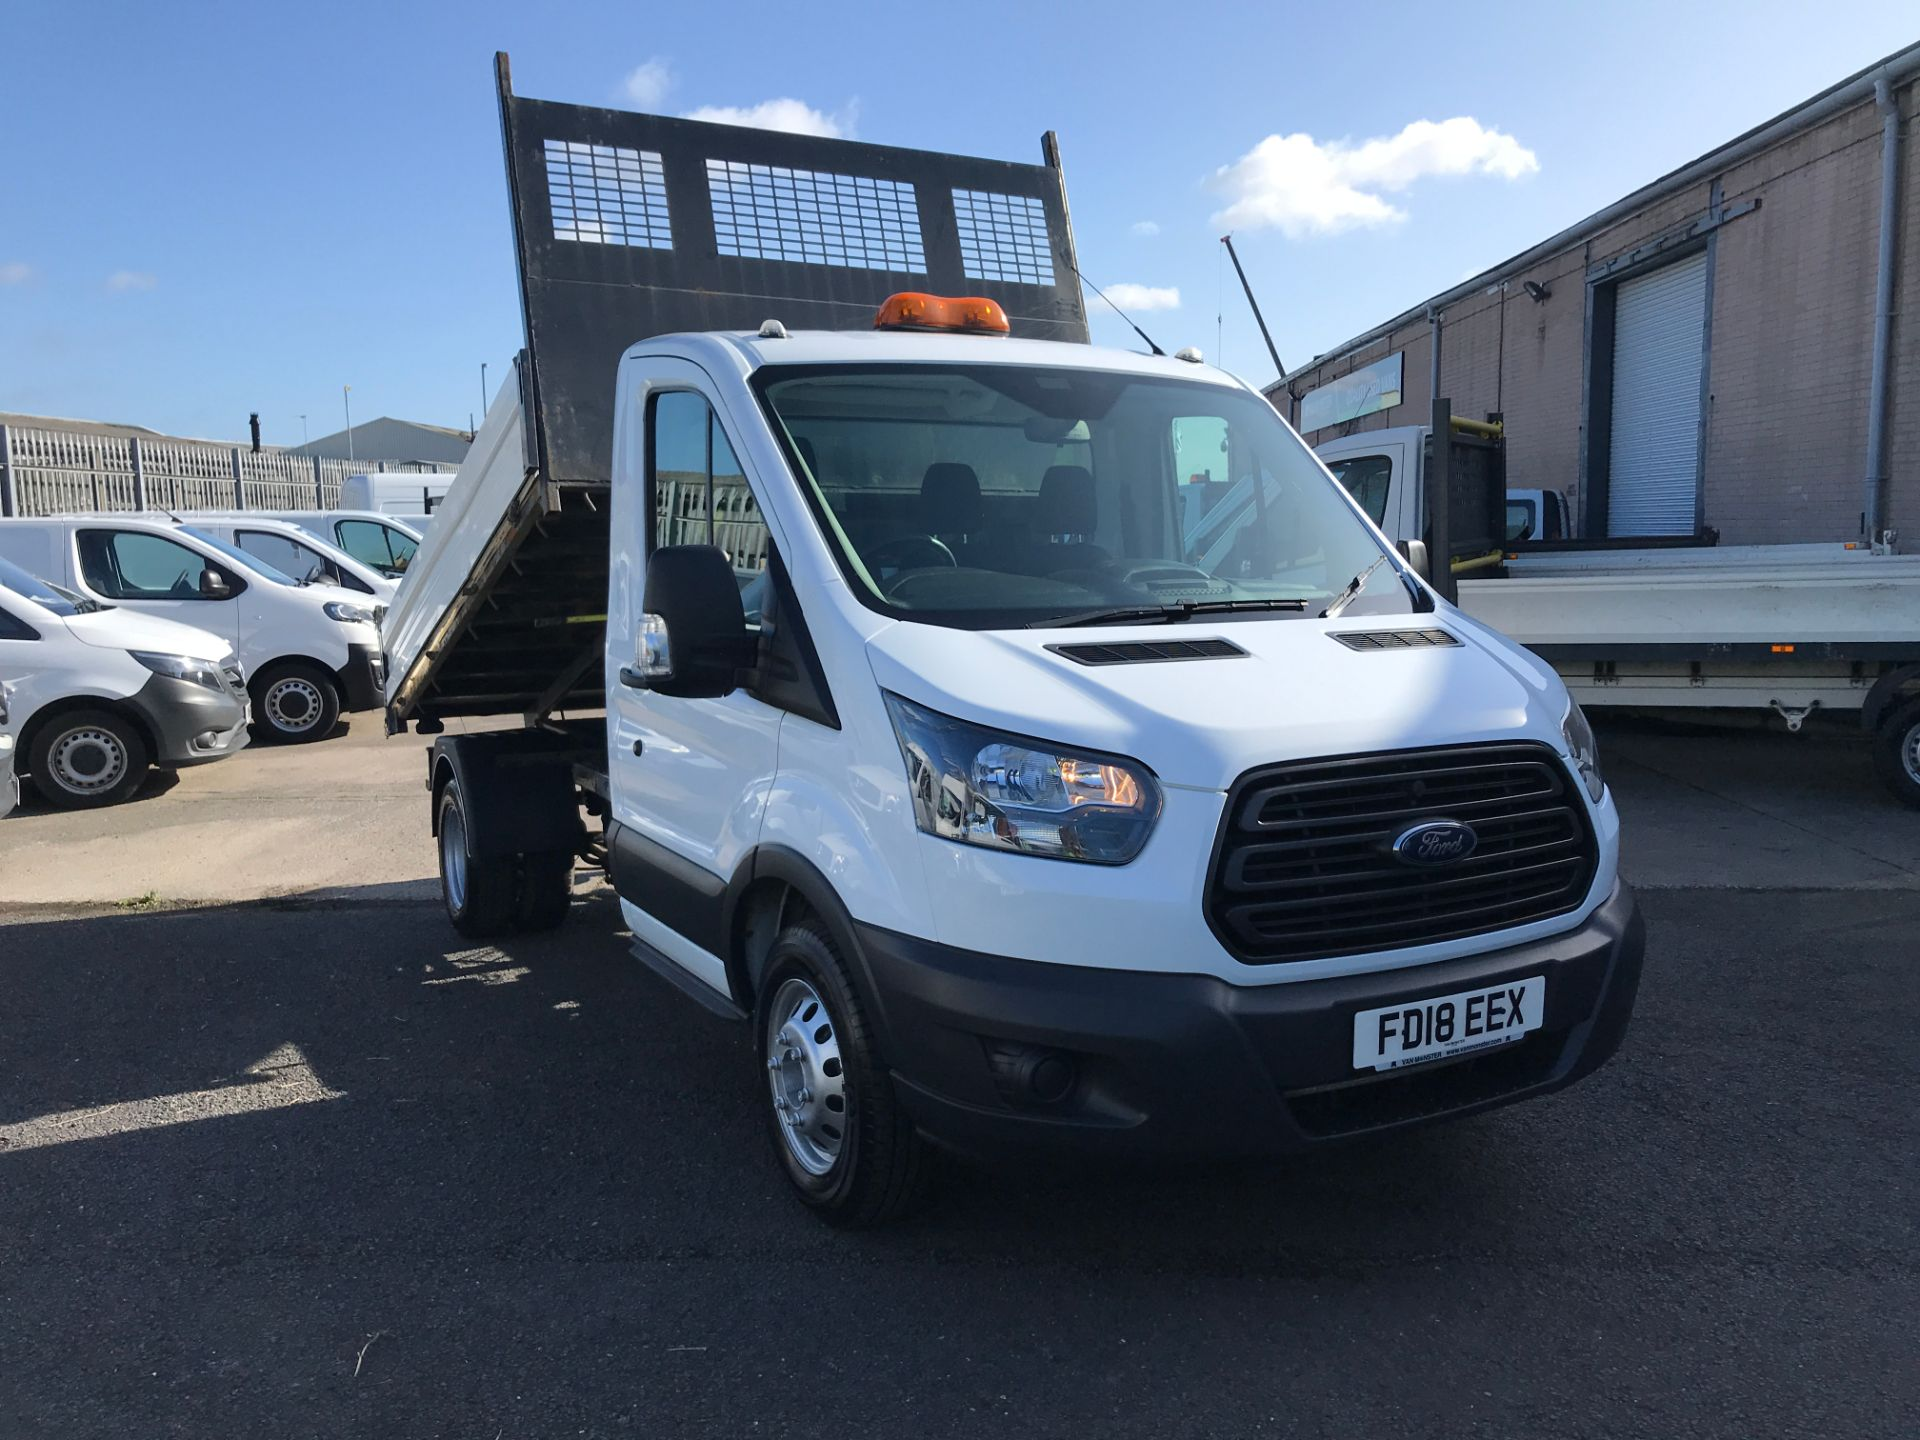 2018 Ford Transit T350 SINGLE CAB TIPPER 130PS EURO 5 (FD18EEX)